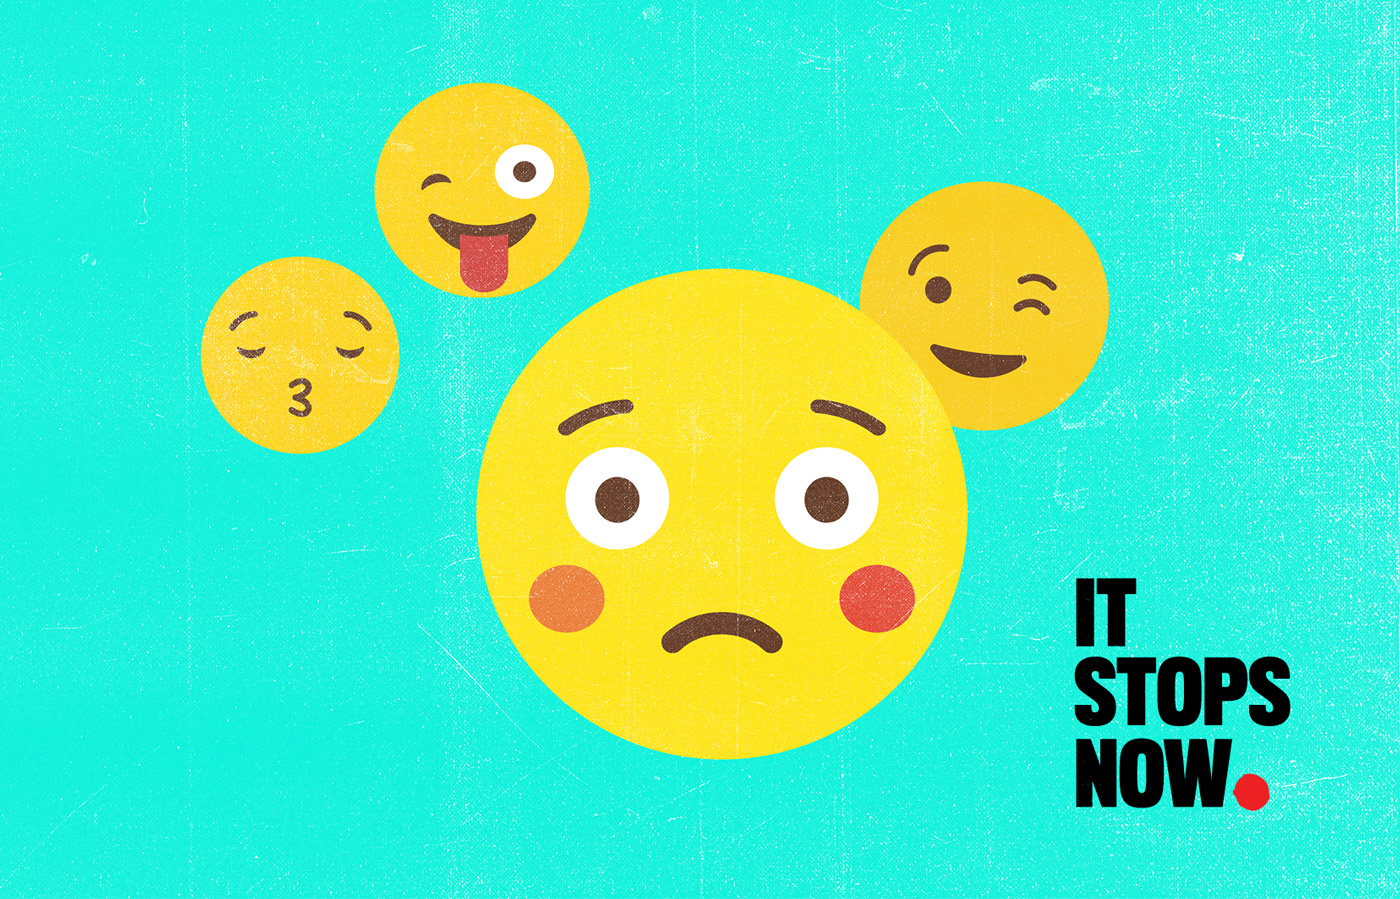 Emoji-inspired artwork for It Stops Now European Union Womens Rights Campaign branding